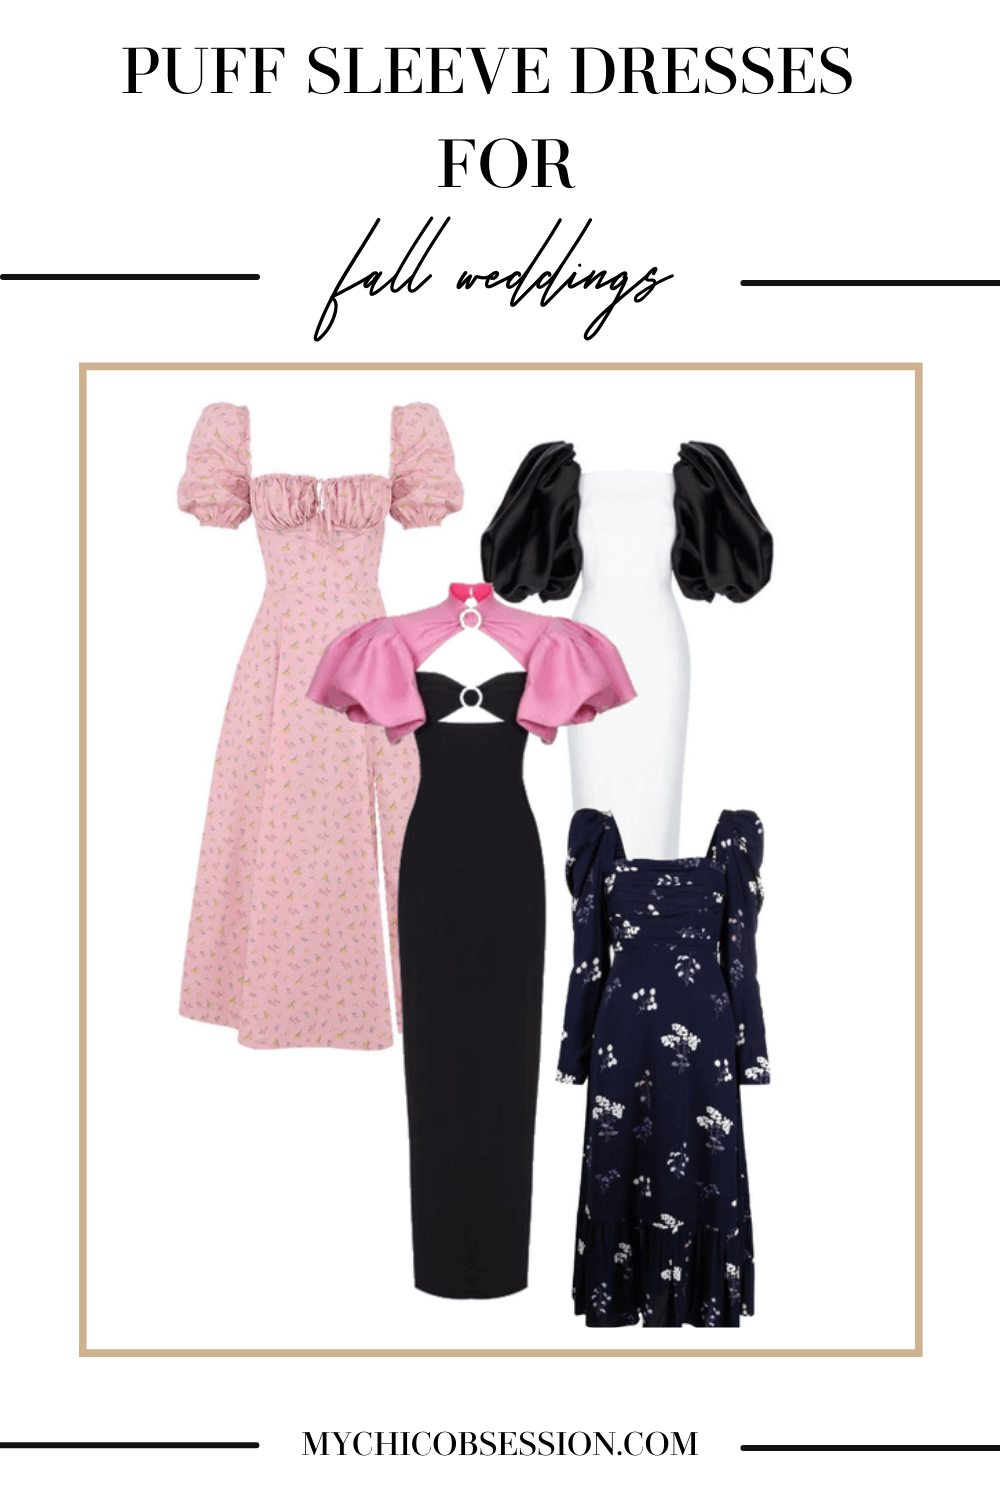 Puff sleeve wedding guest dresses for fall